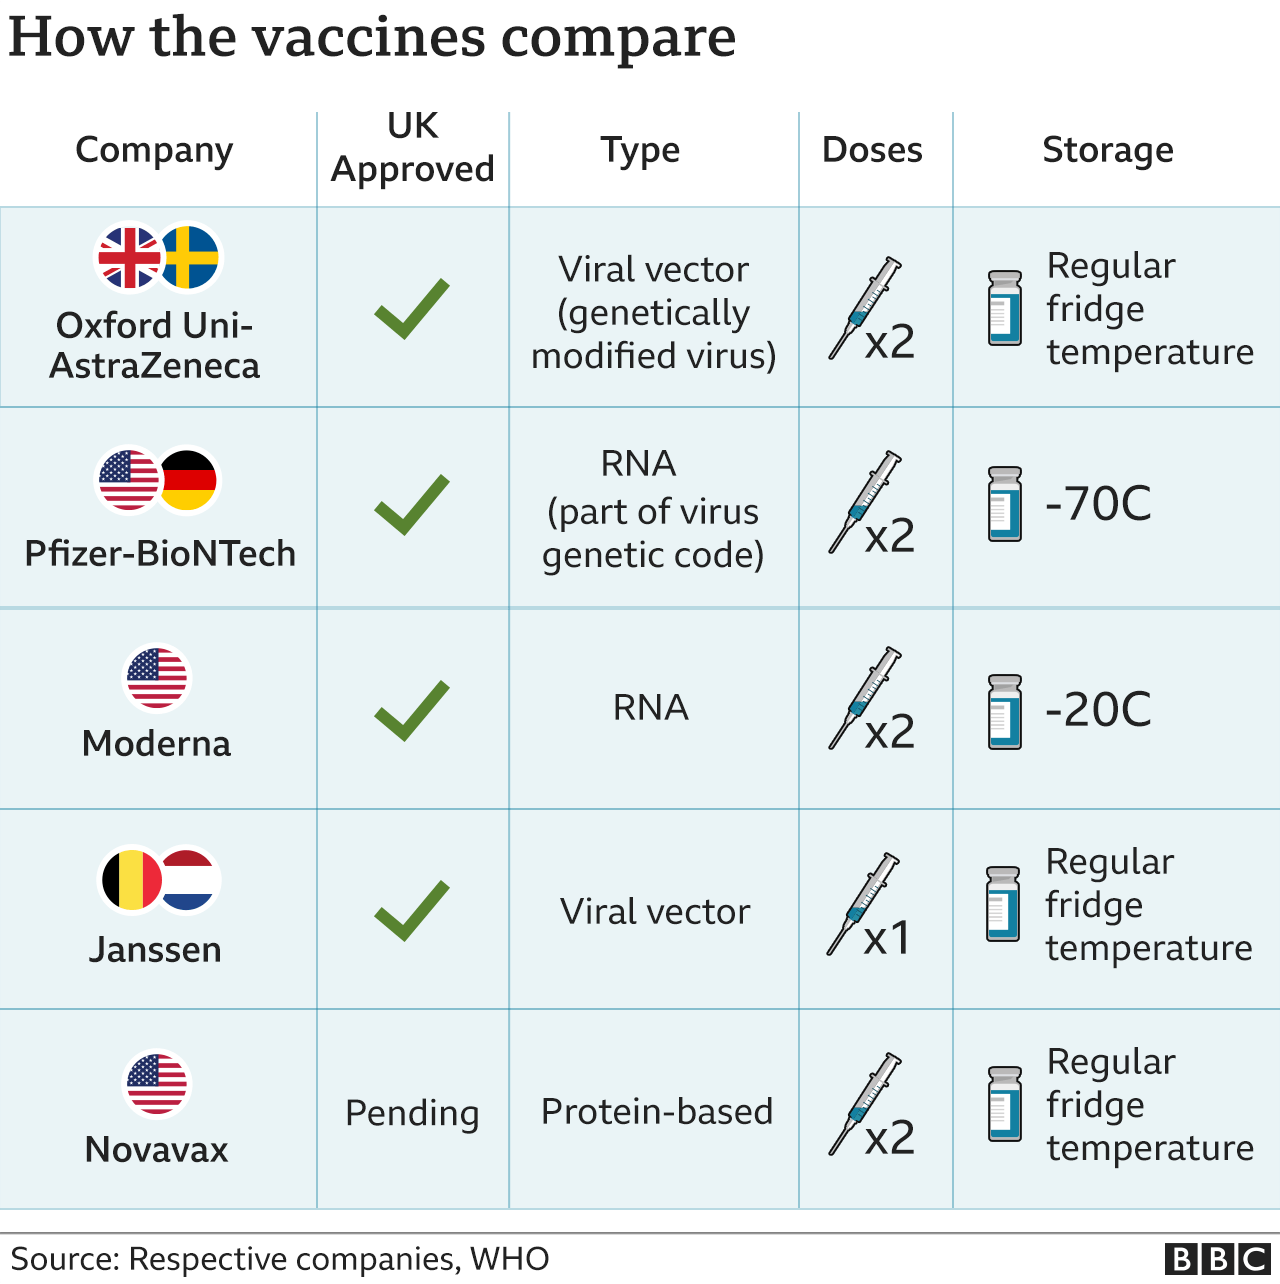 Table showing how the vaccines compare